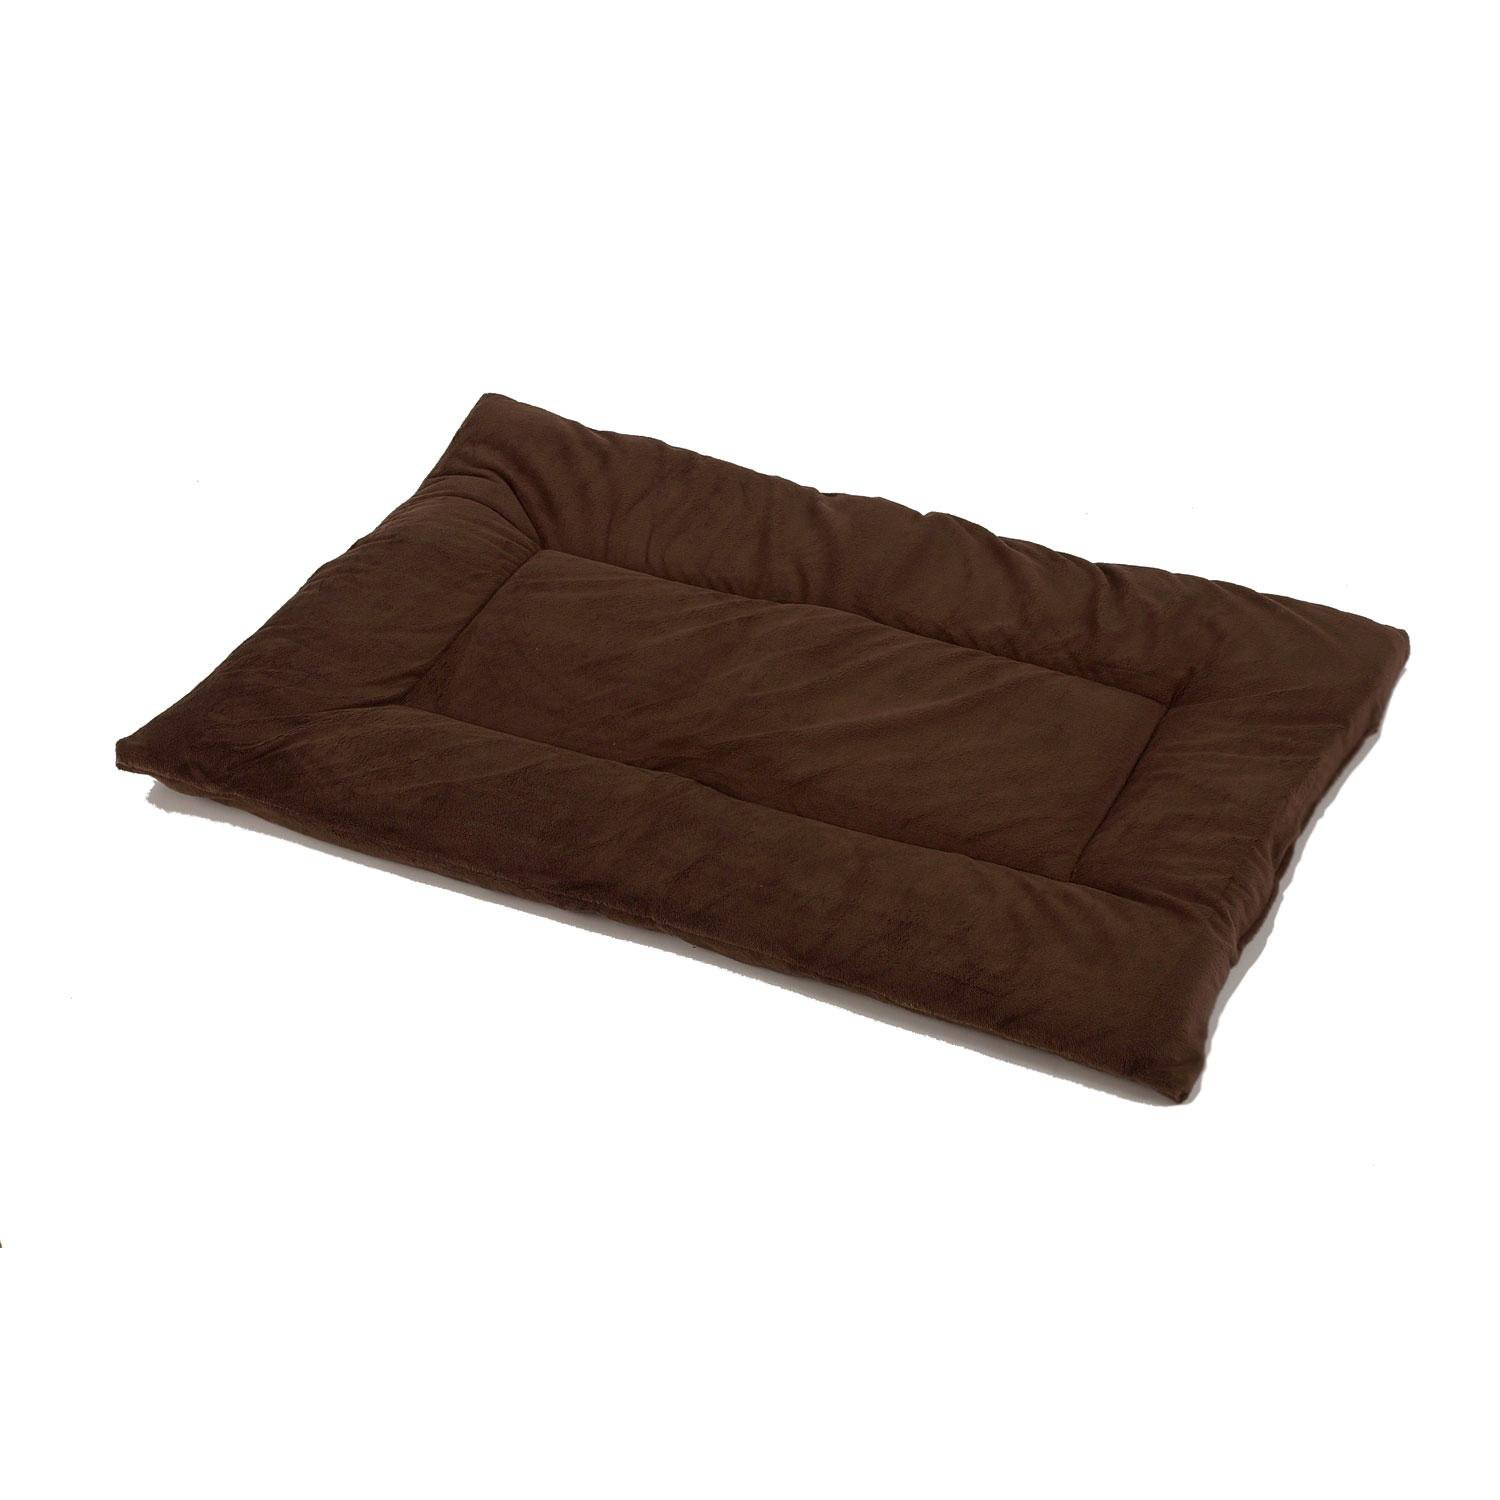 Pet Dreams Plush Sleep-eez Cocoa Brown Reversible Dog Crate Pad